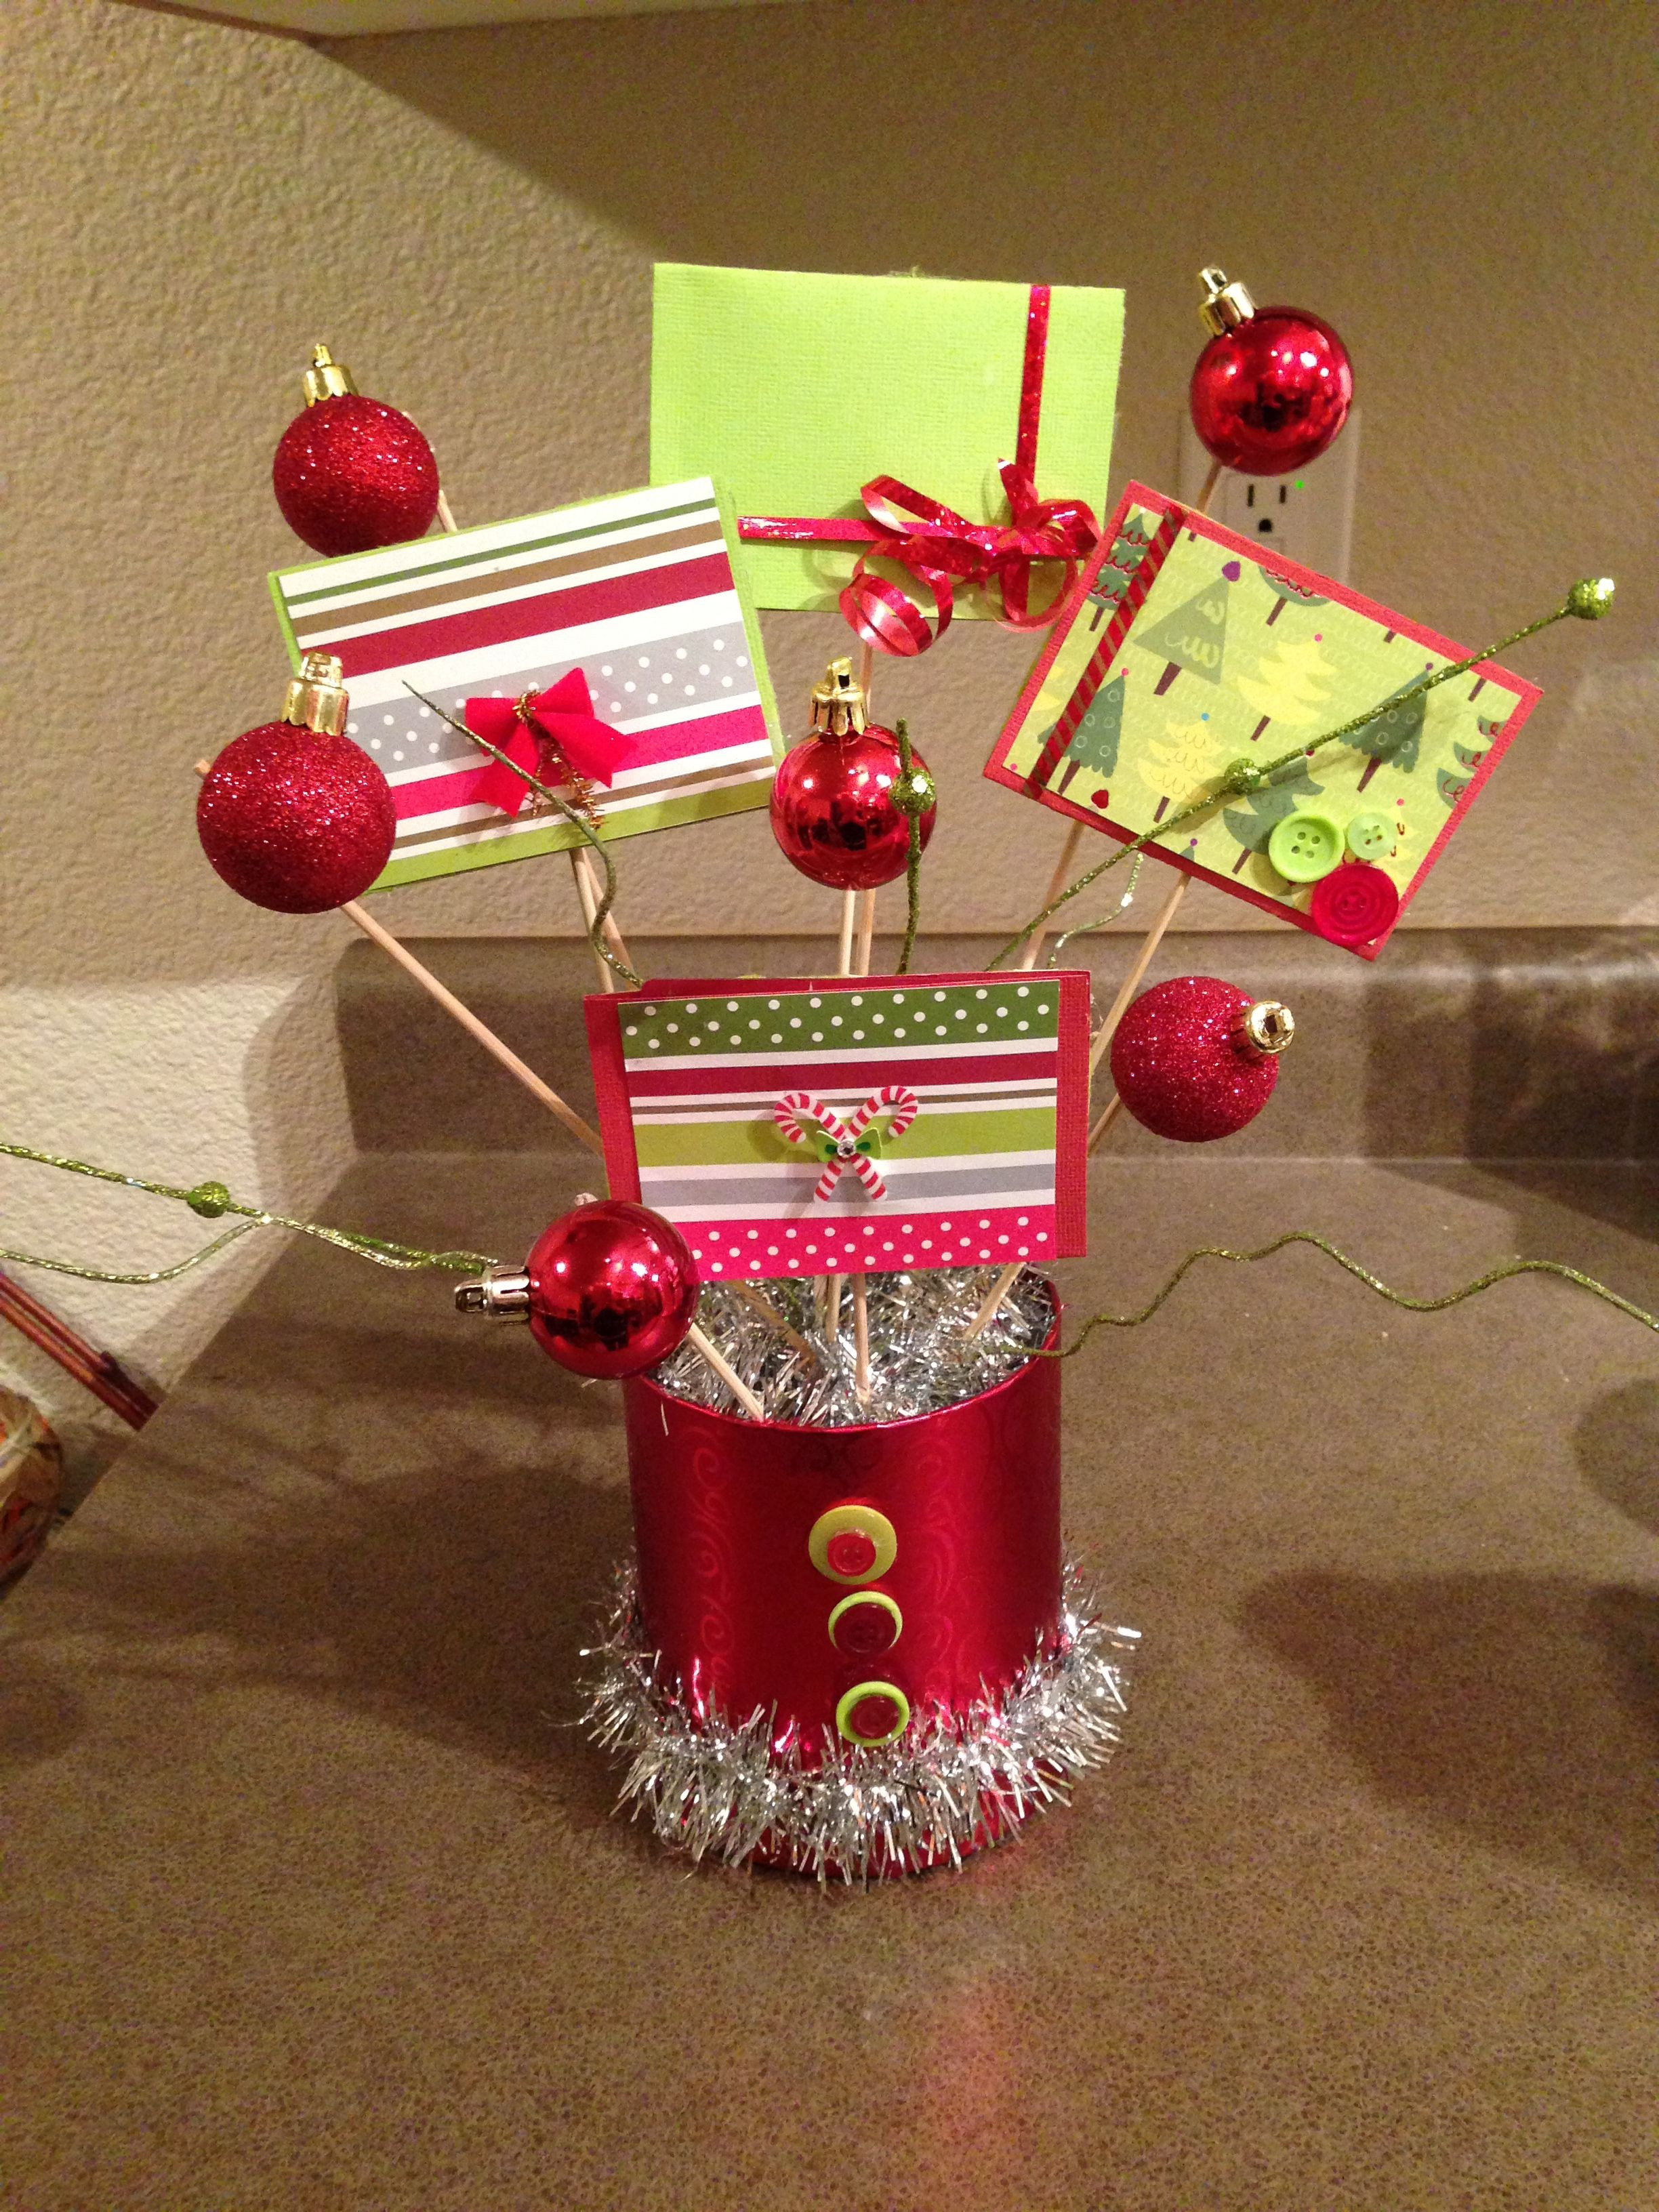 Best ideas about Gift Card Gift Ideas . Save or Pin Gift card bouquet Crafts Pinterest Now.